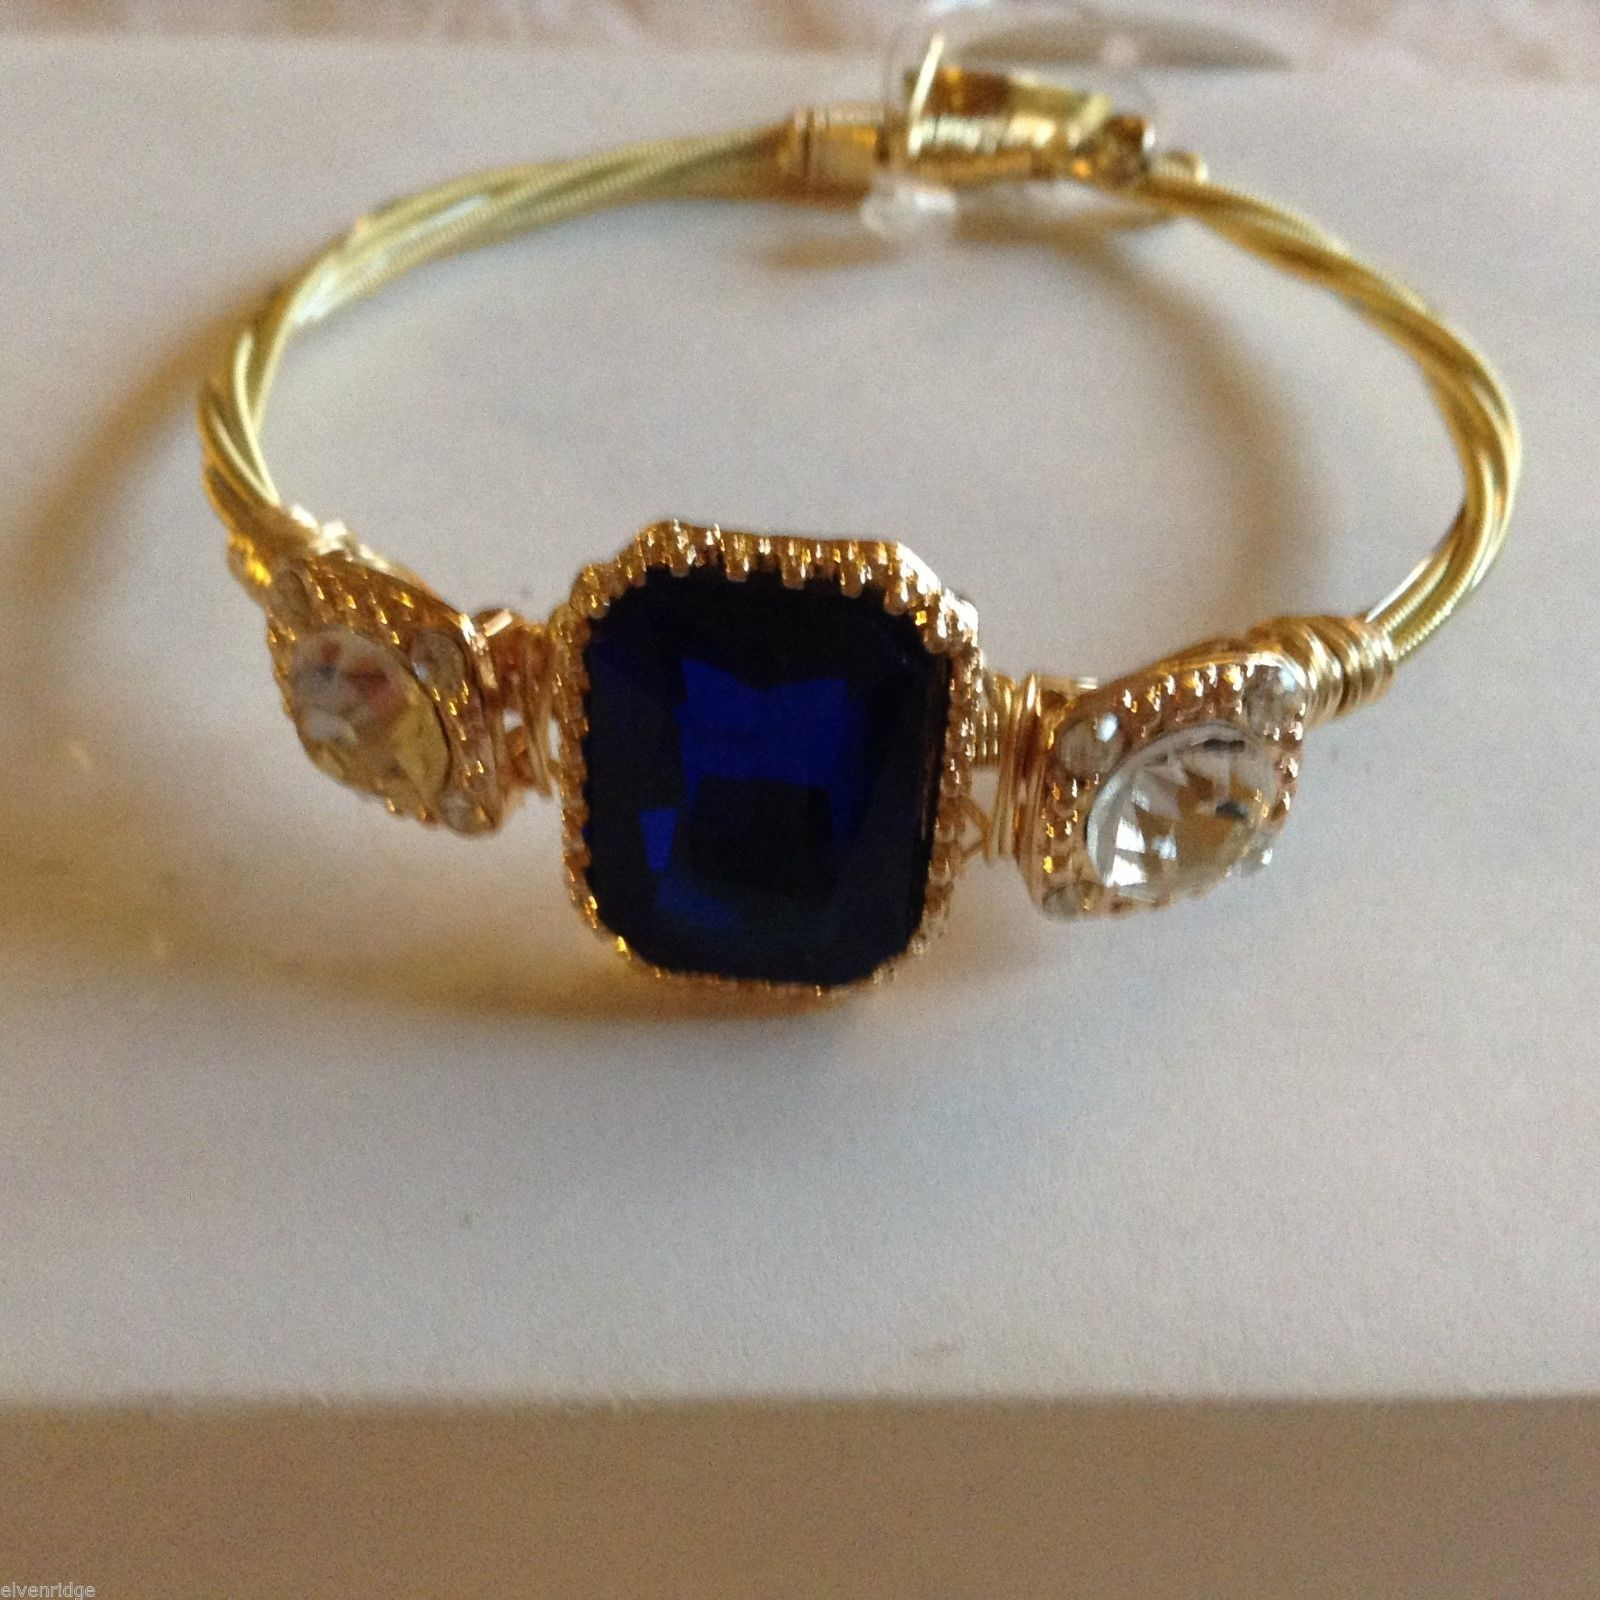 String Theory Guitar Strings Gold Bracelet w/ a Royal Blue Stone, Size 8